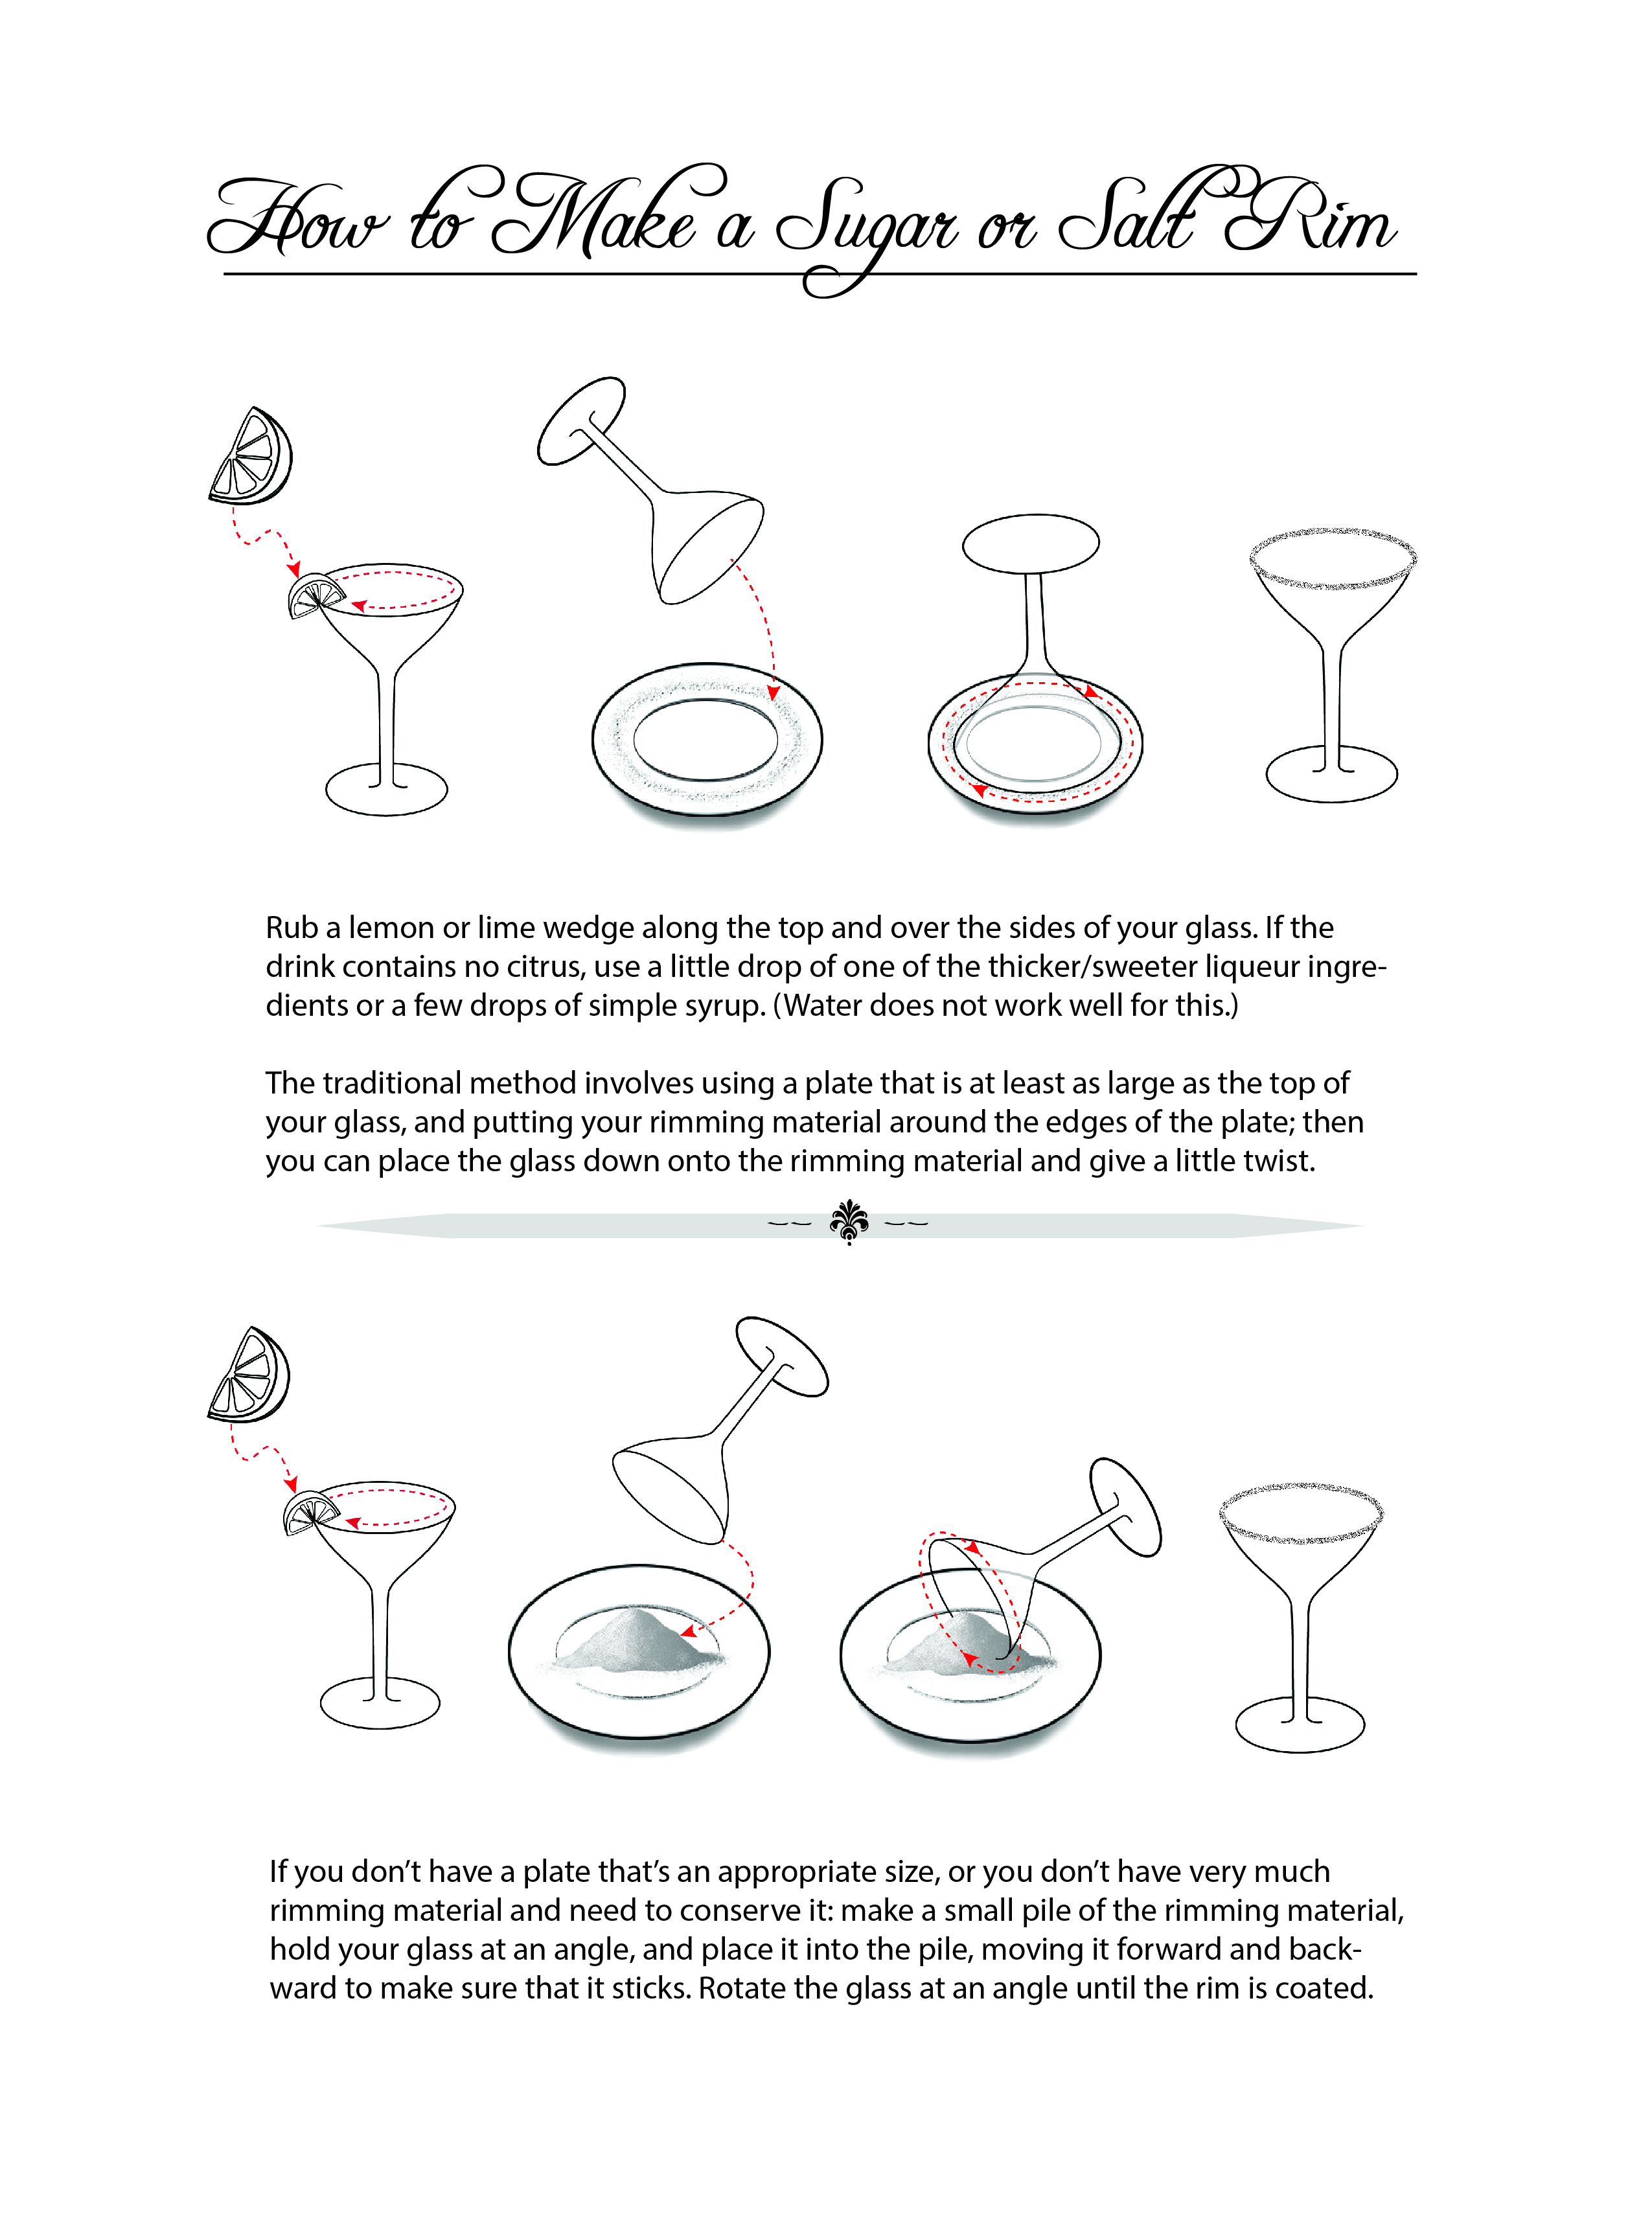 How to Make a Sugar or Salt Rim